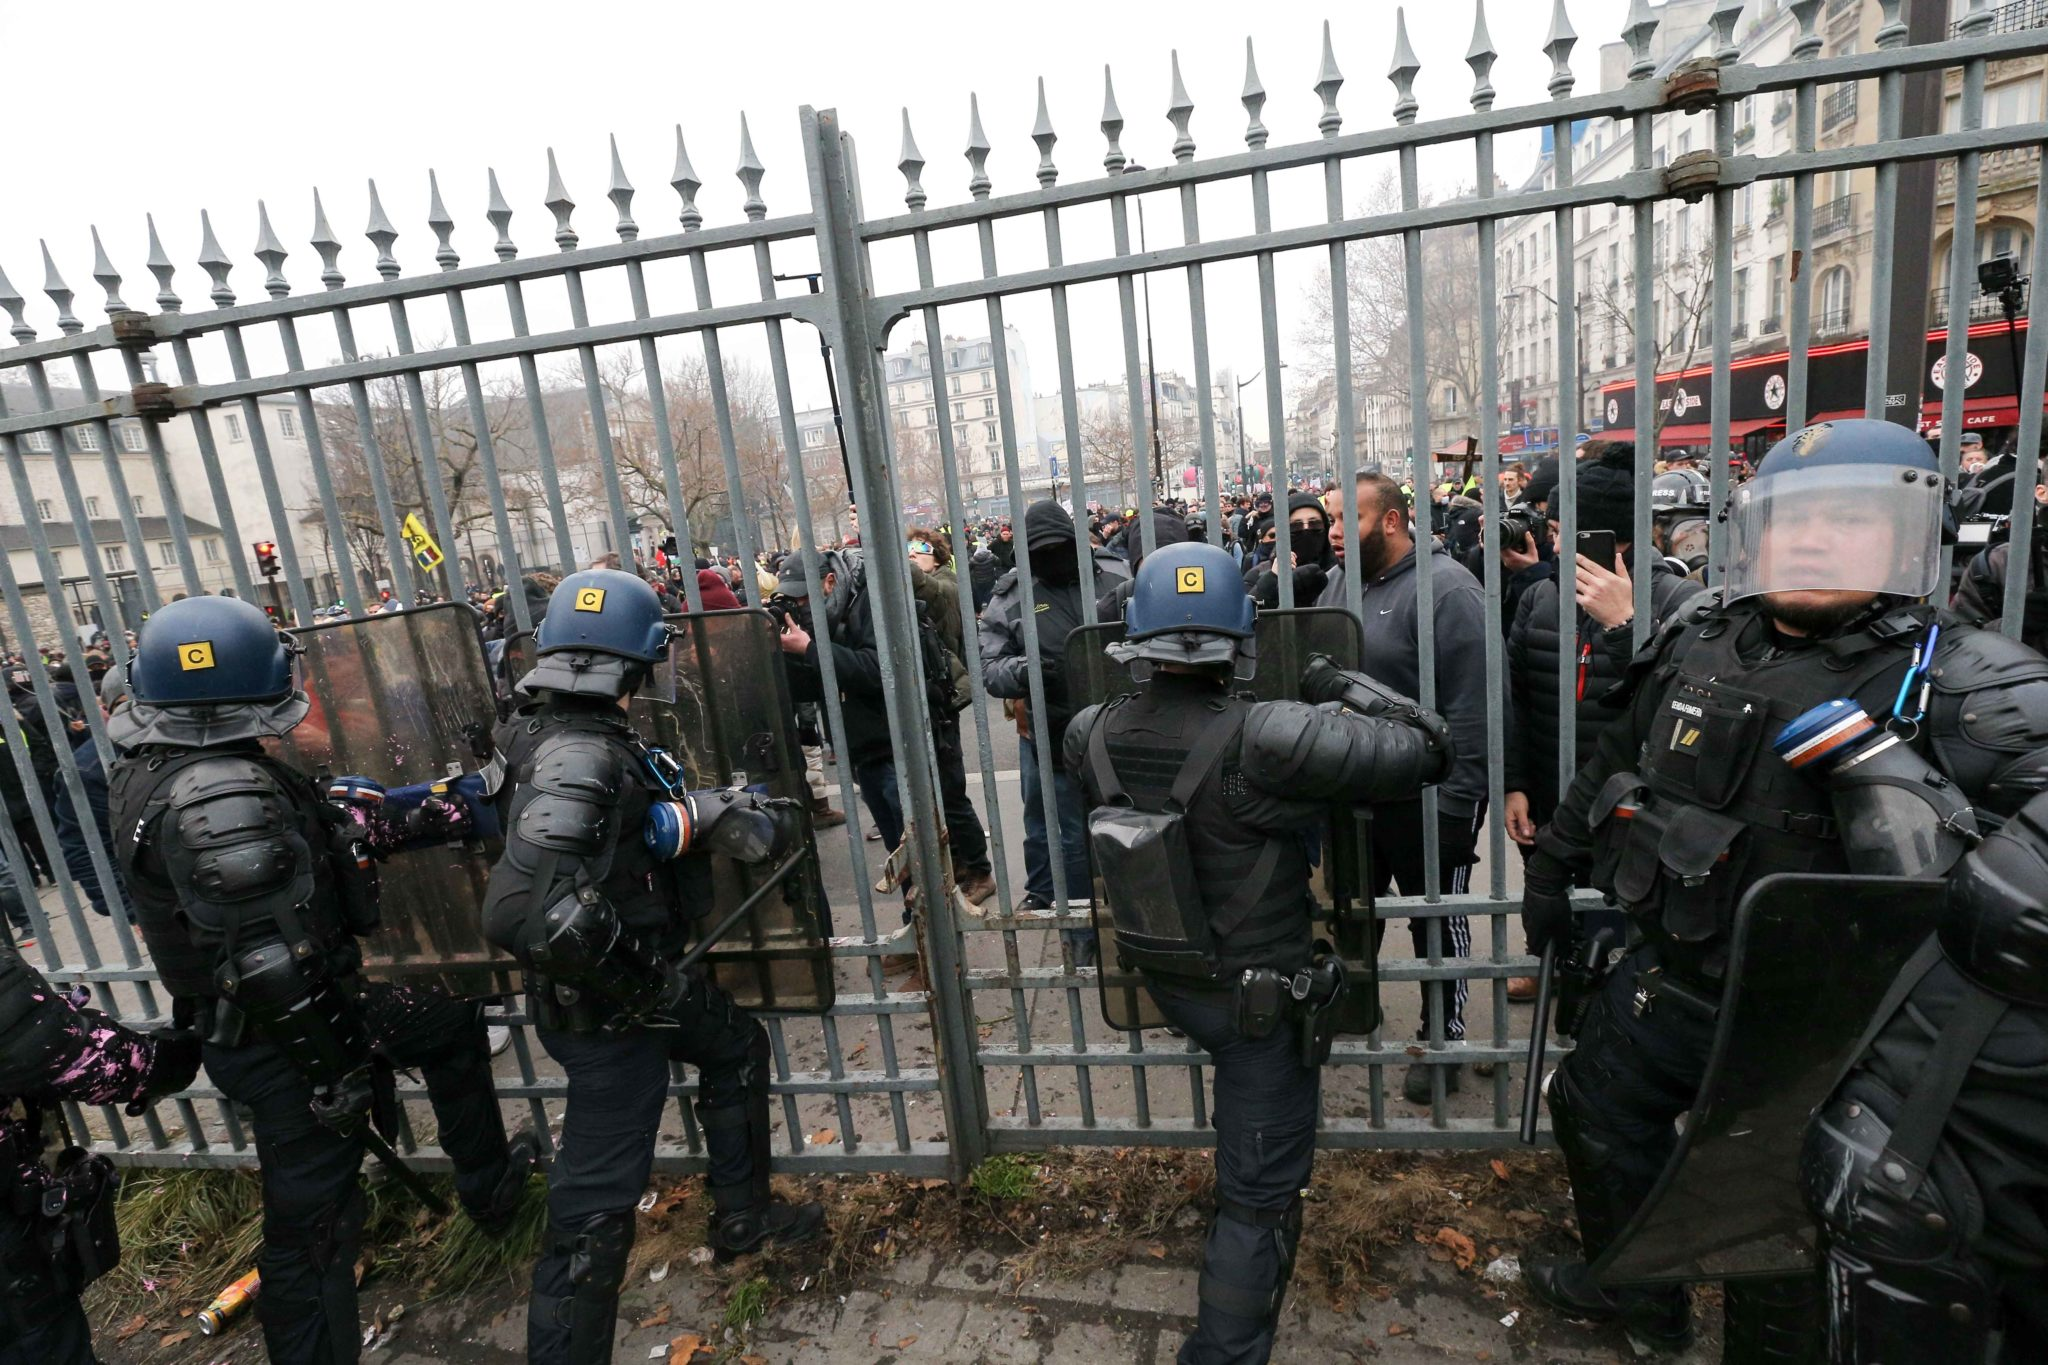 Riot mobile gendarmes prevents intrusion of demonstrators in the Gare de l'Est train station in Paris during a demonstration called by French national trade union General Confederation of Labour (CGT) against the pension reform on January 4, 2020. After